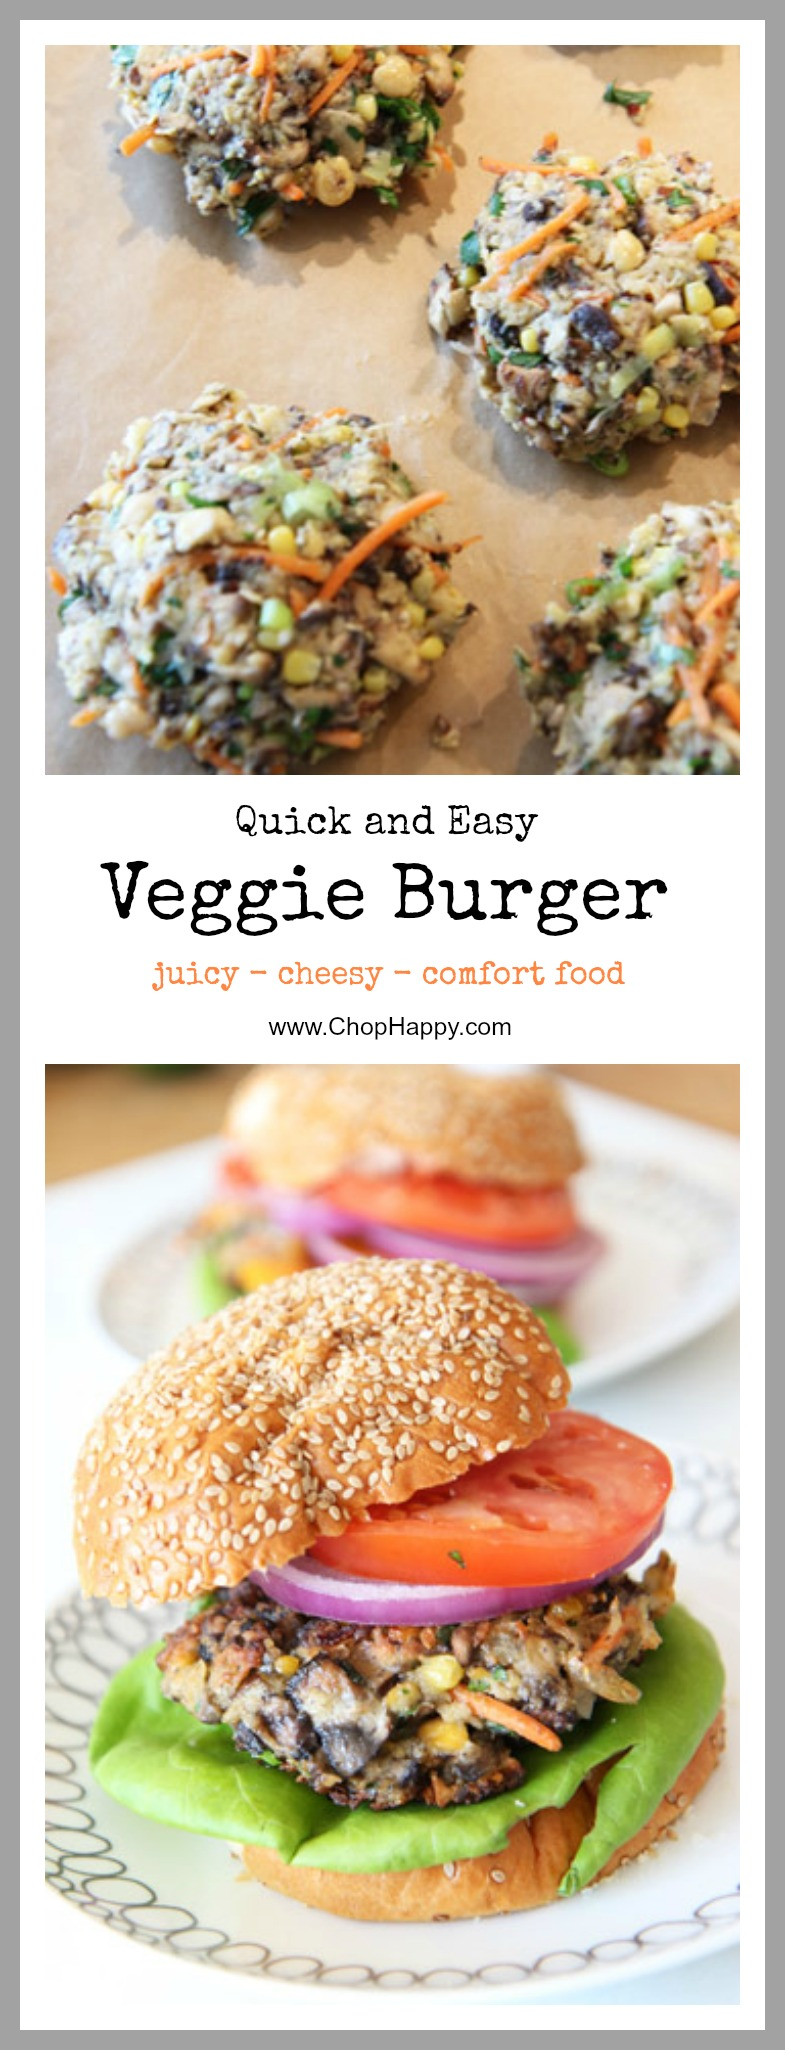 Easy Veggie Burger Recipe - that will make even a meat eater love this burger. The best part is you throw abunch of veggies, cheese, and eggs in a bowl and patties are ready quickly. www.ChopHappy.com